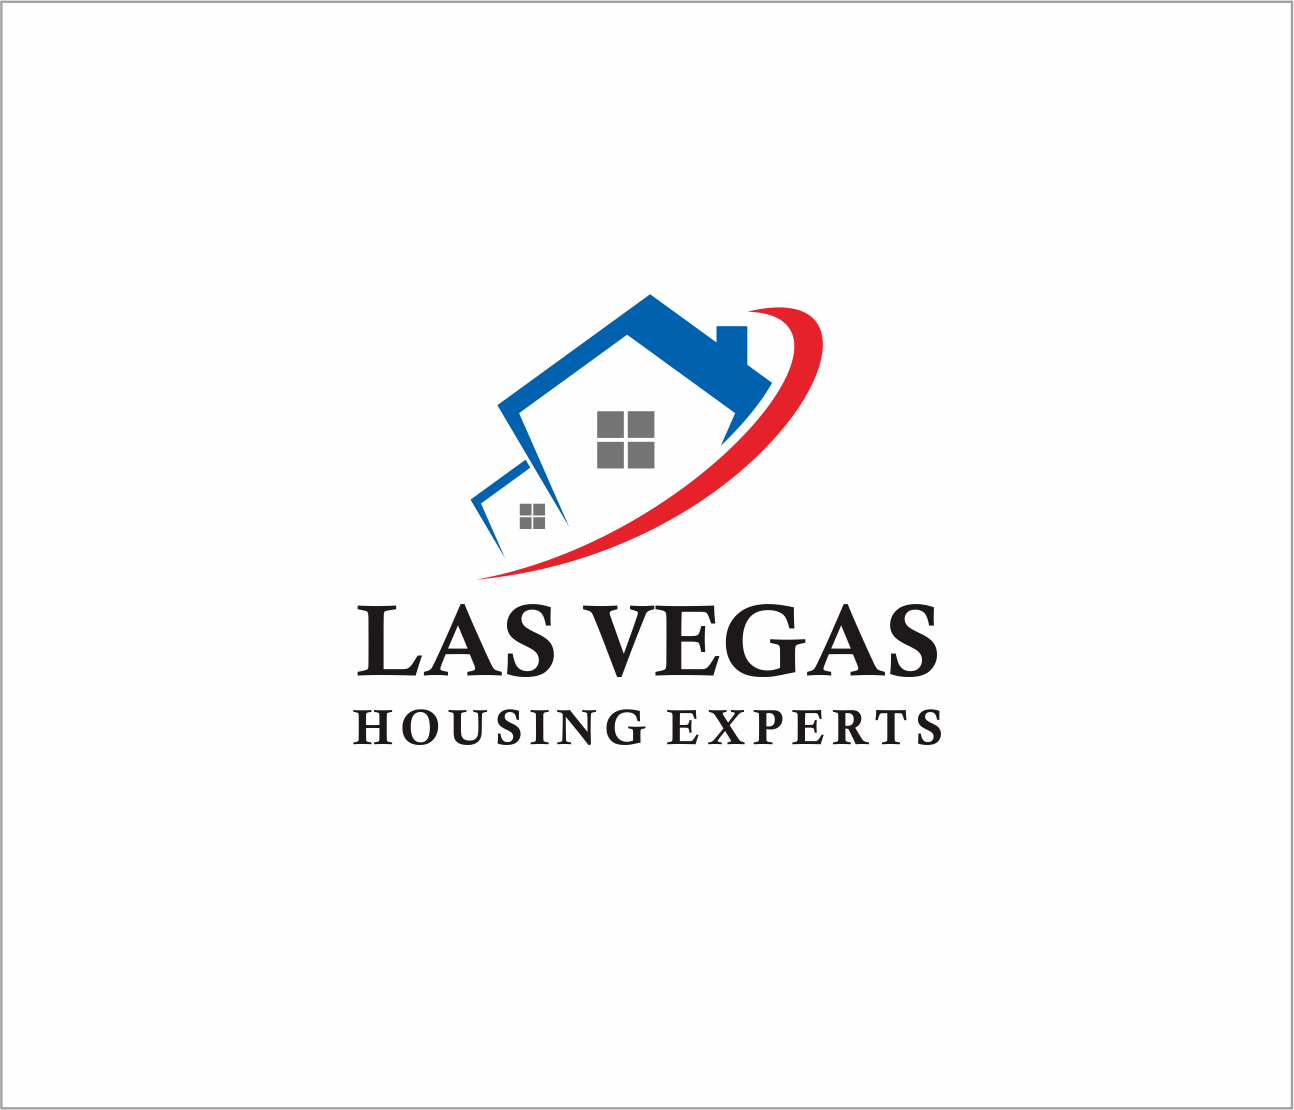 Logo Design by Armada Jamaluddin - Entry No. 121 in the Logo Design Contest Las Vegas Housing Experts Logo Design.